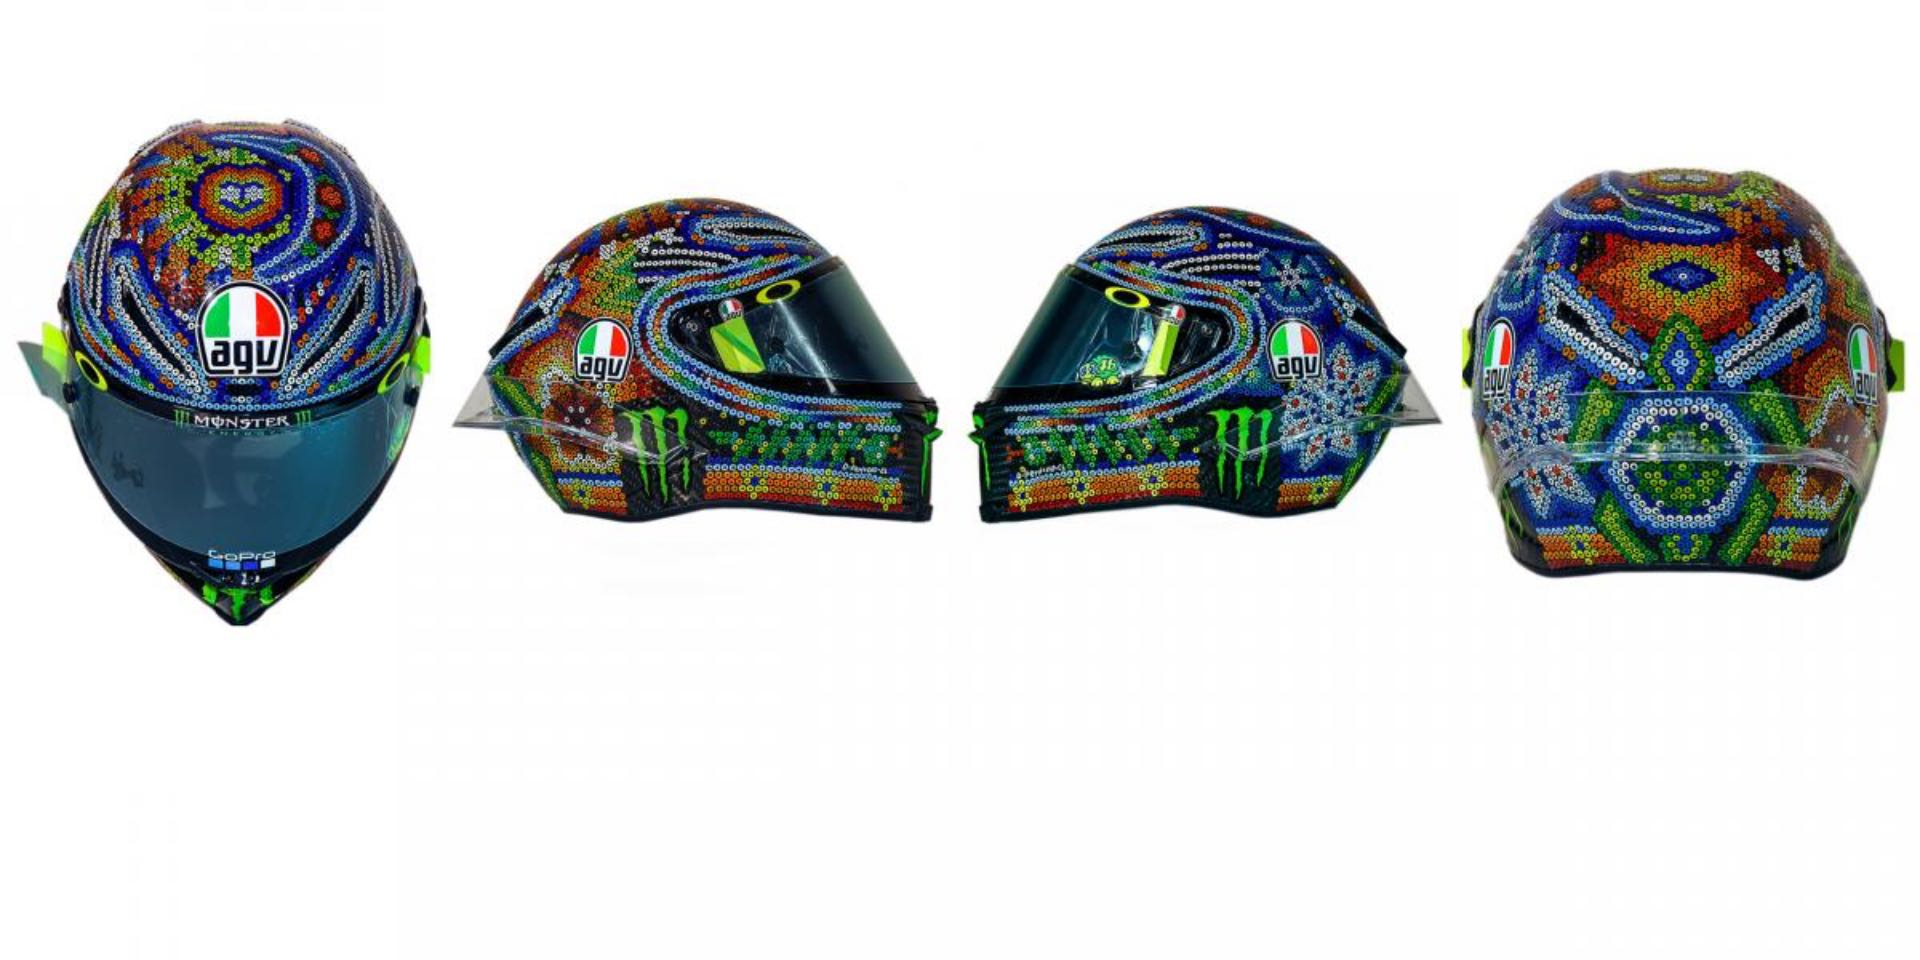 Valentino Rossi 'Huichol' Art Helmet Unveiled | Always a Cool Story